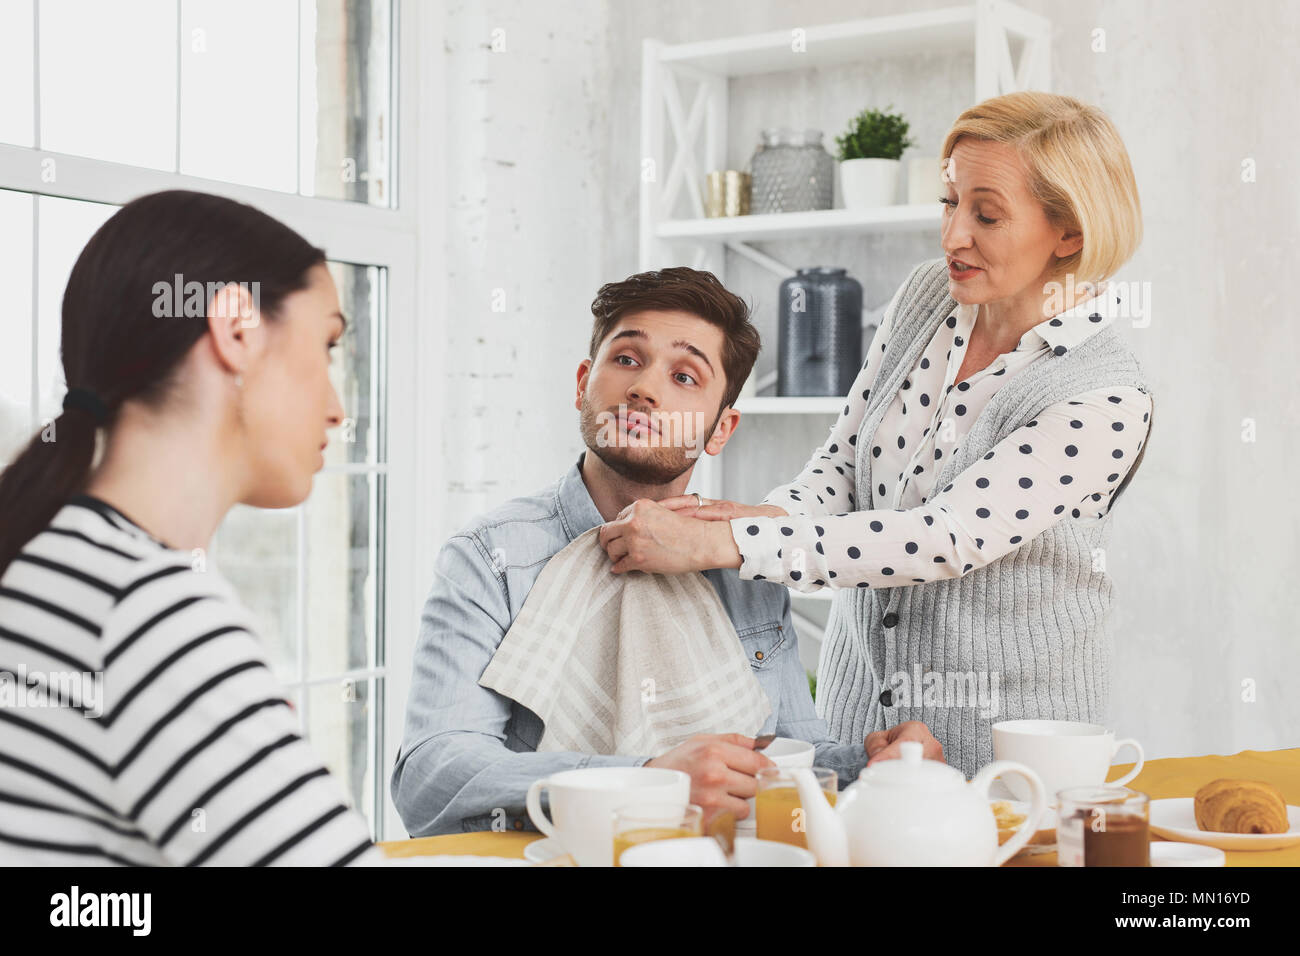 Pleasant aged woman caring about her son - Stock Image